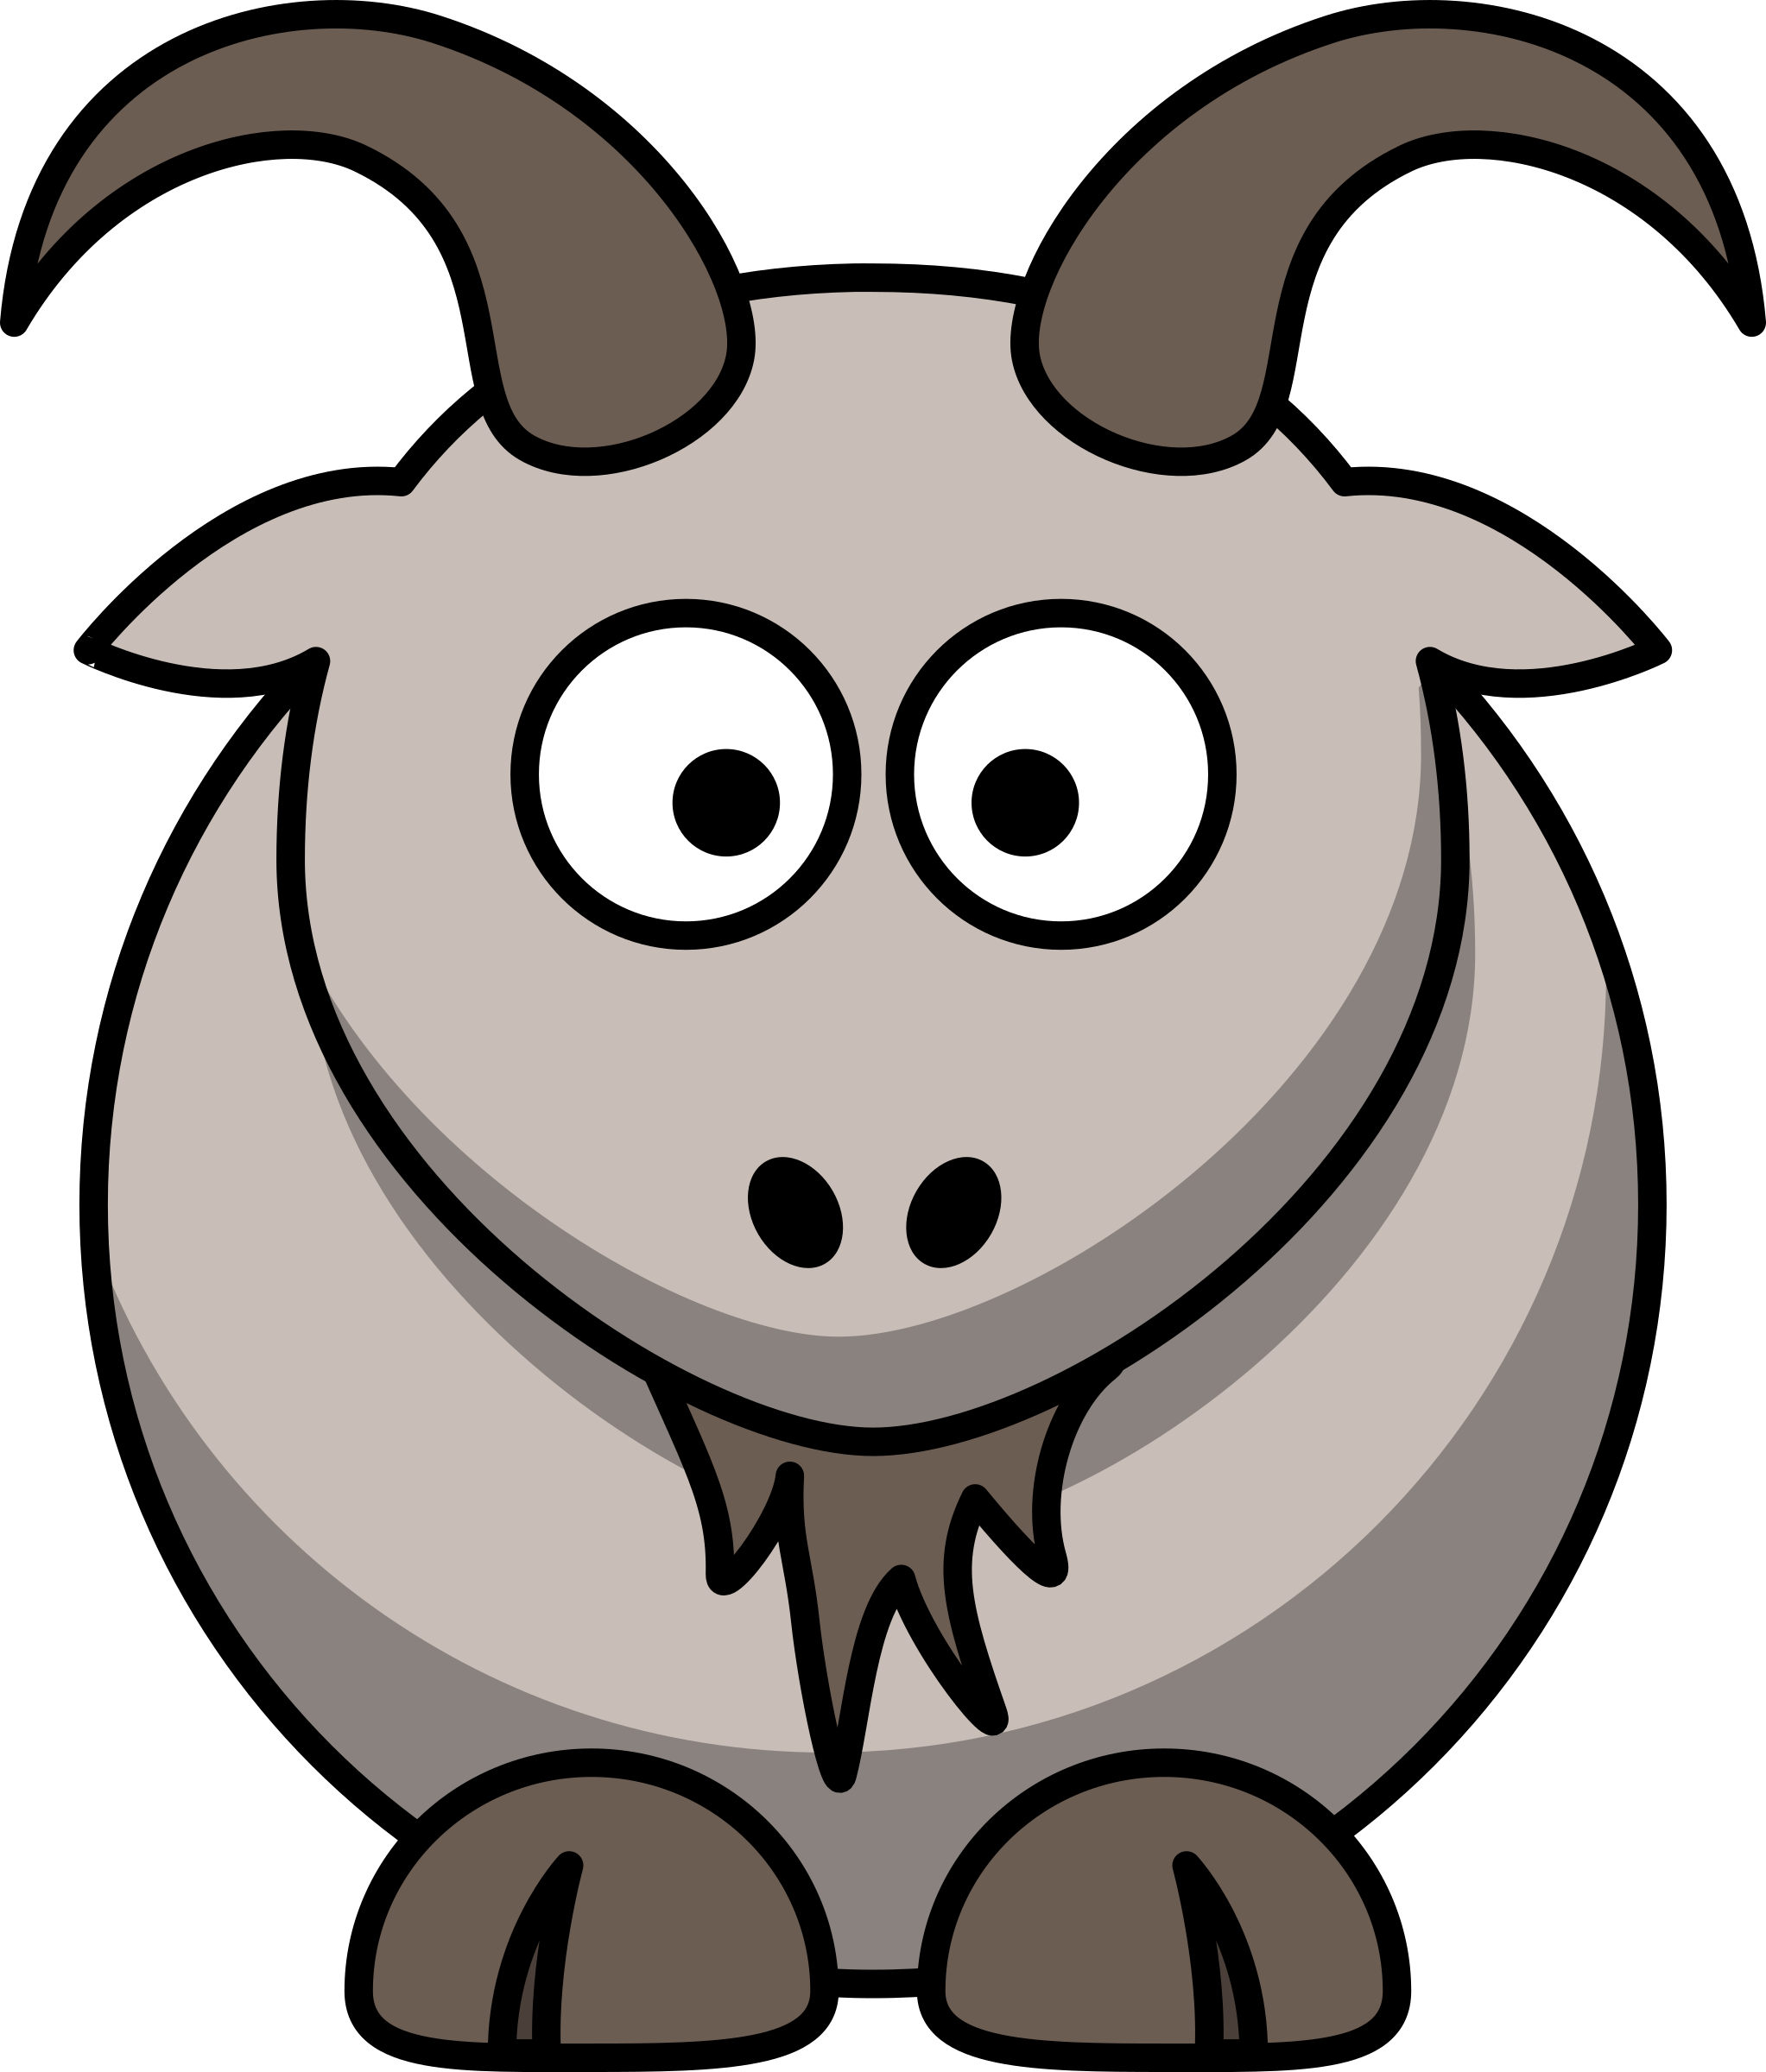 funny animal clipart at getdrawings com free for personal use rh getdrawings com cartoon zoo animal clipart free cute cartoon animal clipart